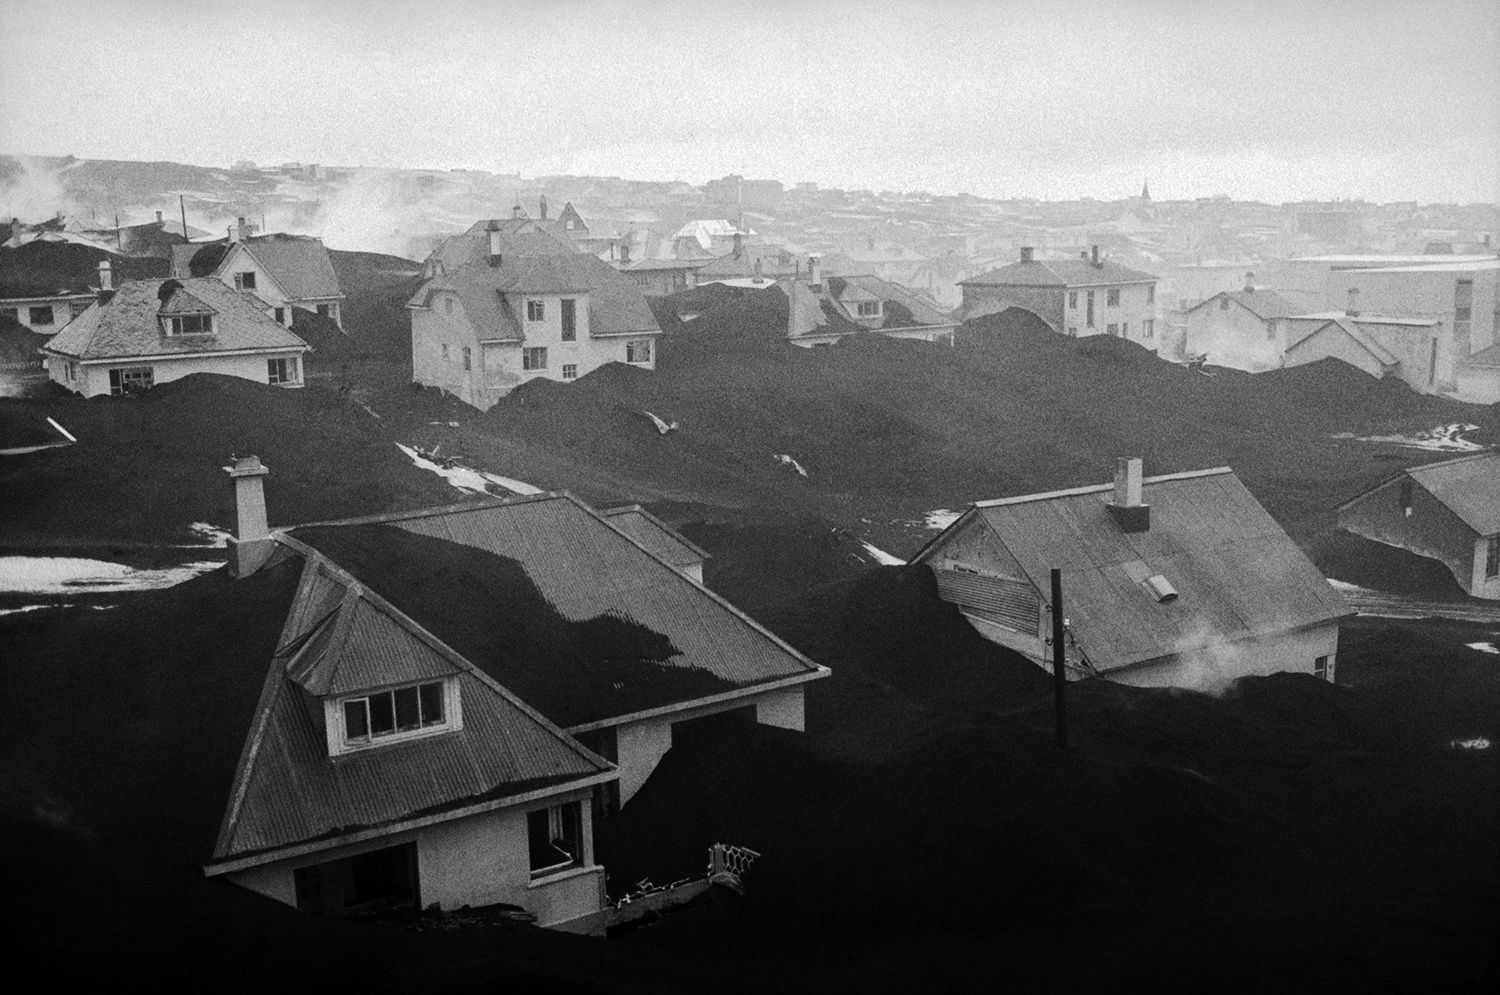 The houses of Vestmannaeyjar, buried under the ashes, after the eruption of 1973 - photo Owen Franken / Corbis in The Atlantic